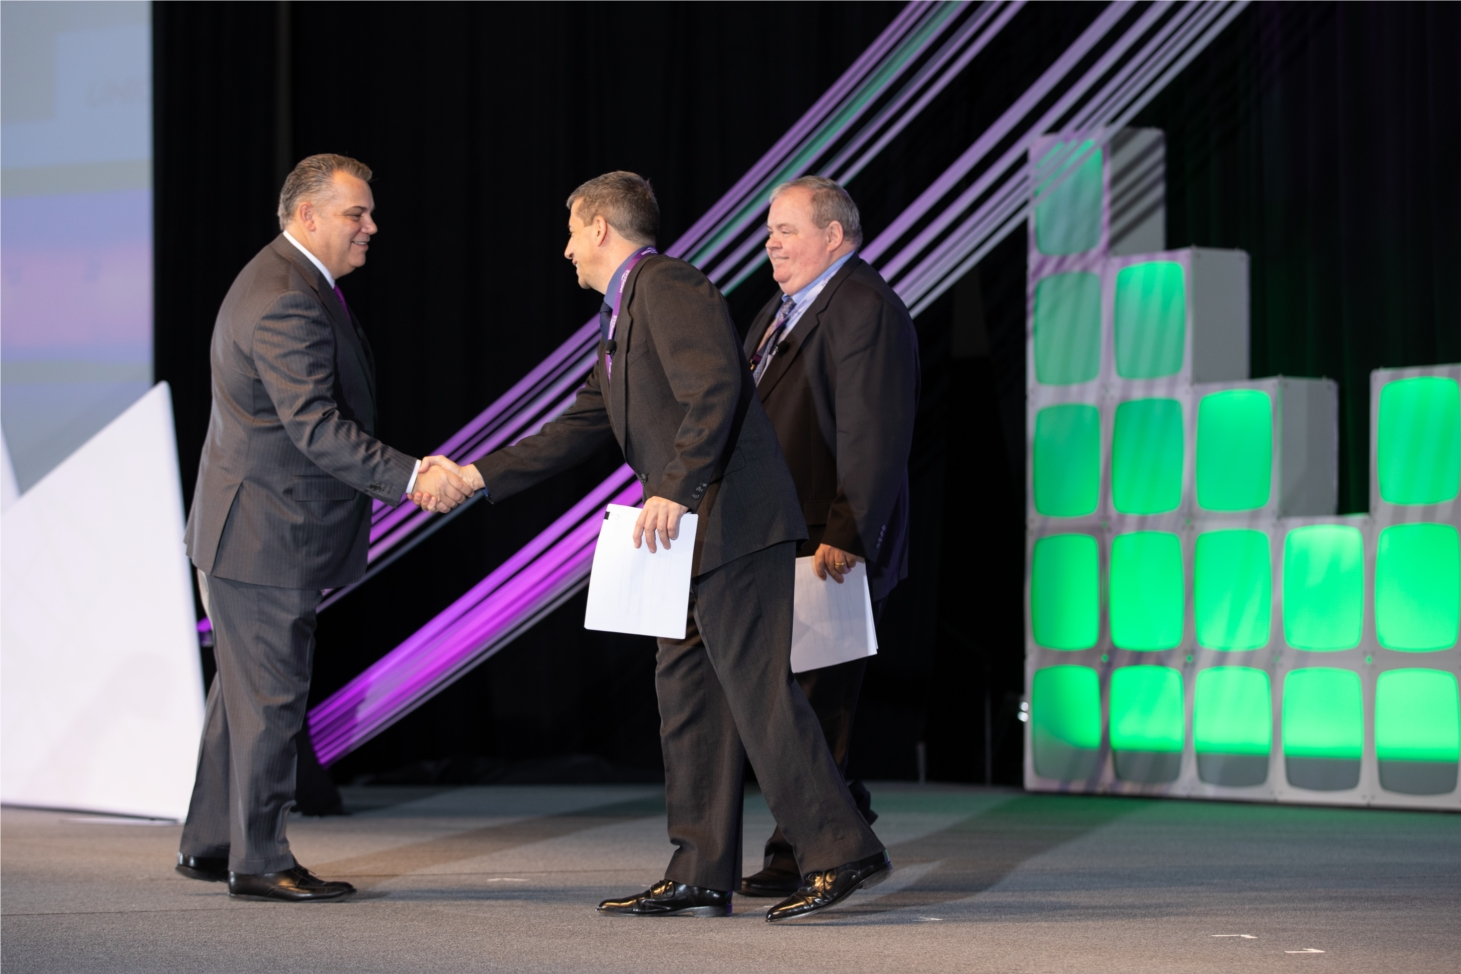 CEO and Owner, Bill Cosgrove, welcomes National Sales Manager, Mike Jones, and SVP of Retail Sales, Jim Ferriter, to the stage at the 2019 Annual Partner Celebration.